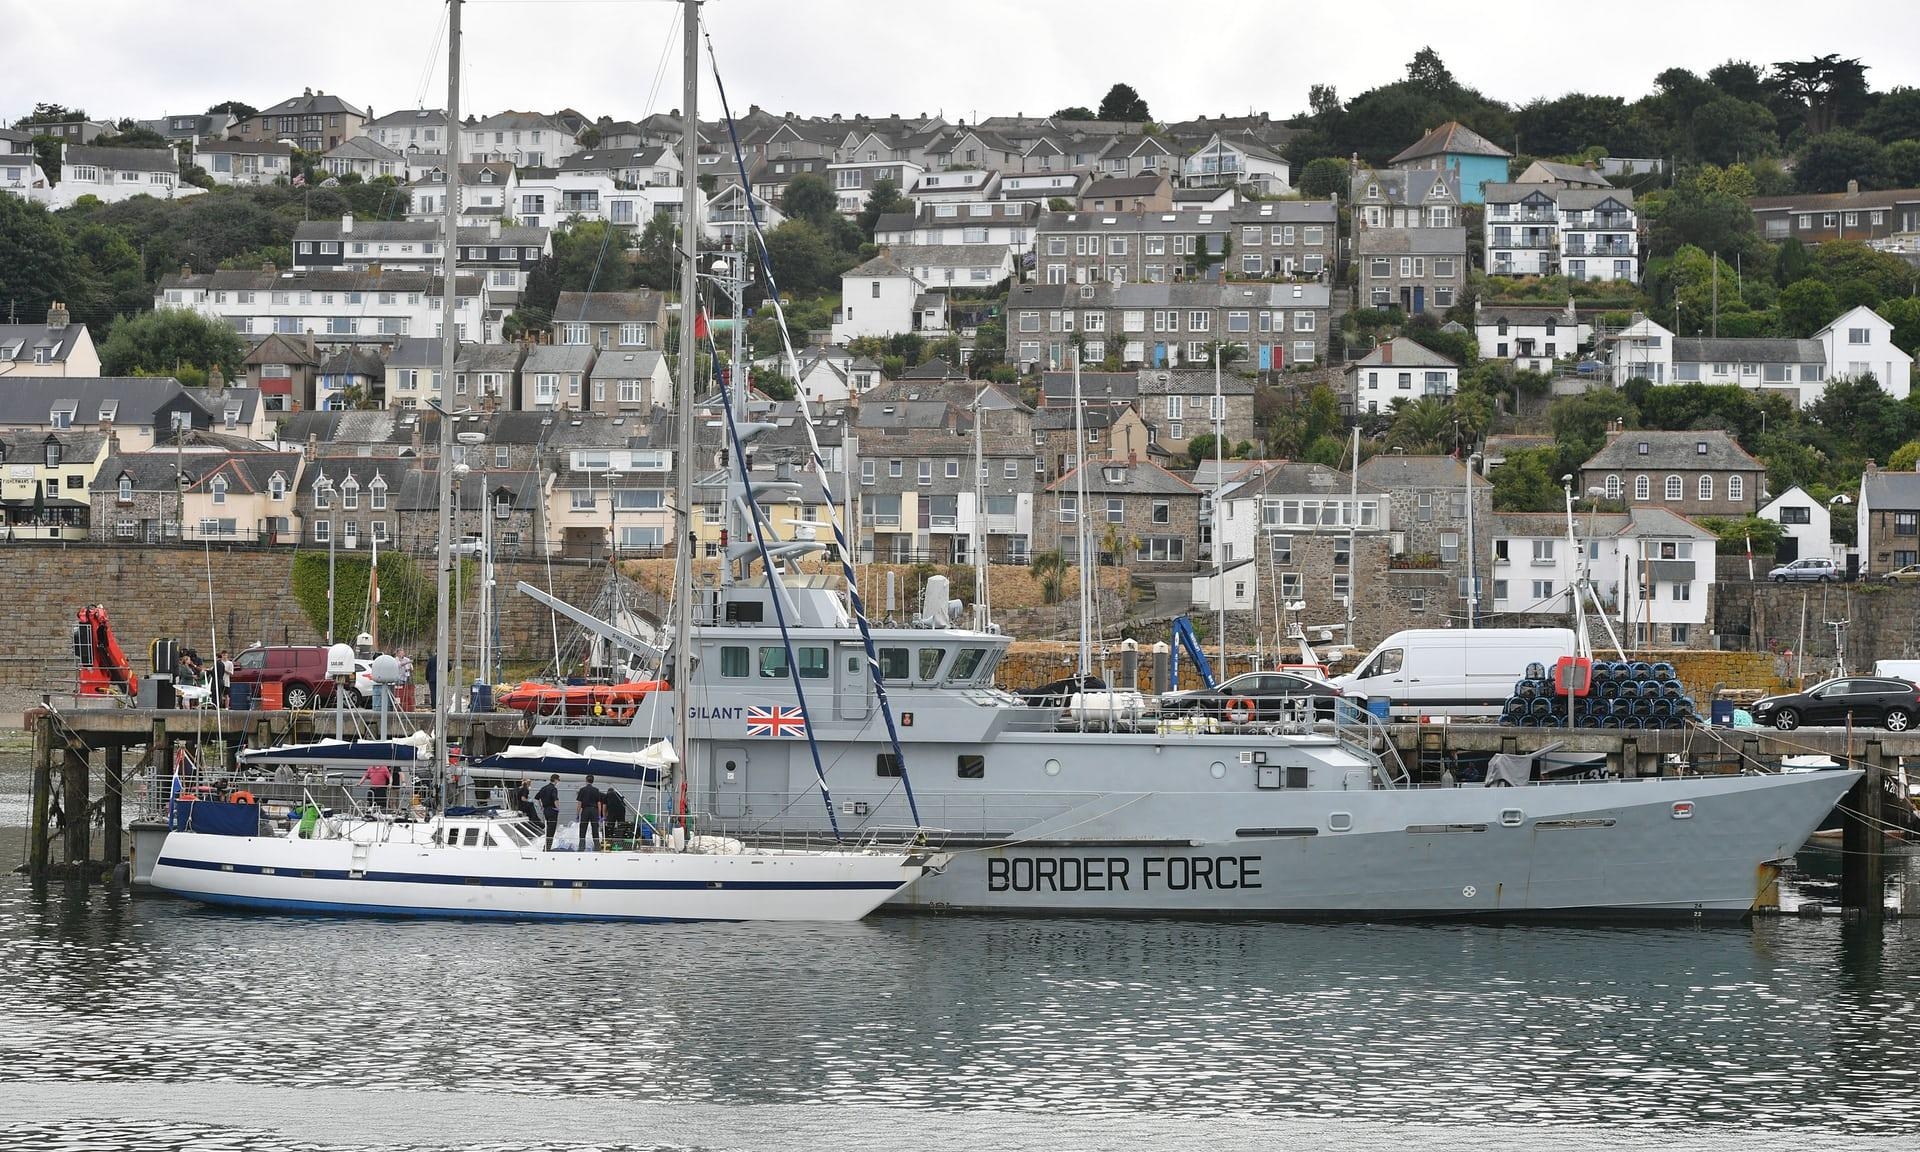 Cornwall cocaine seizure: Two men charged in connection with huge drugs haul from yacht